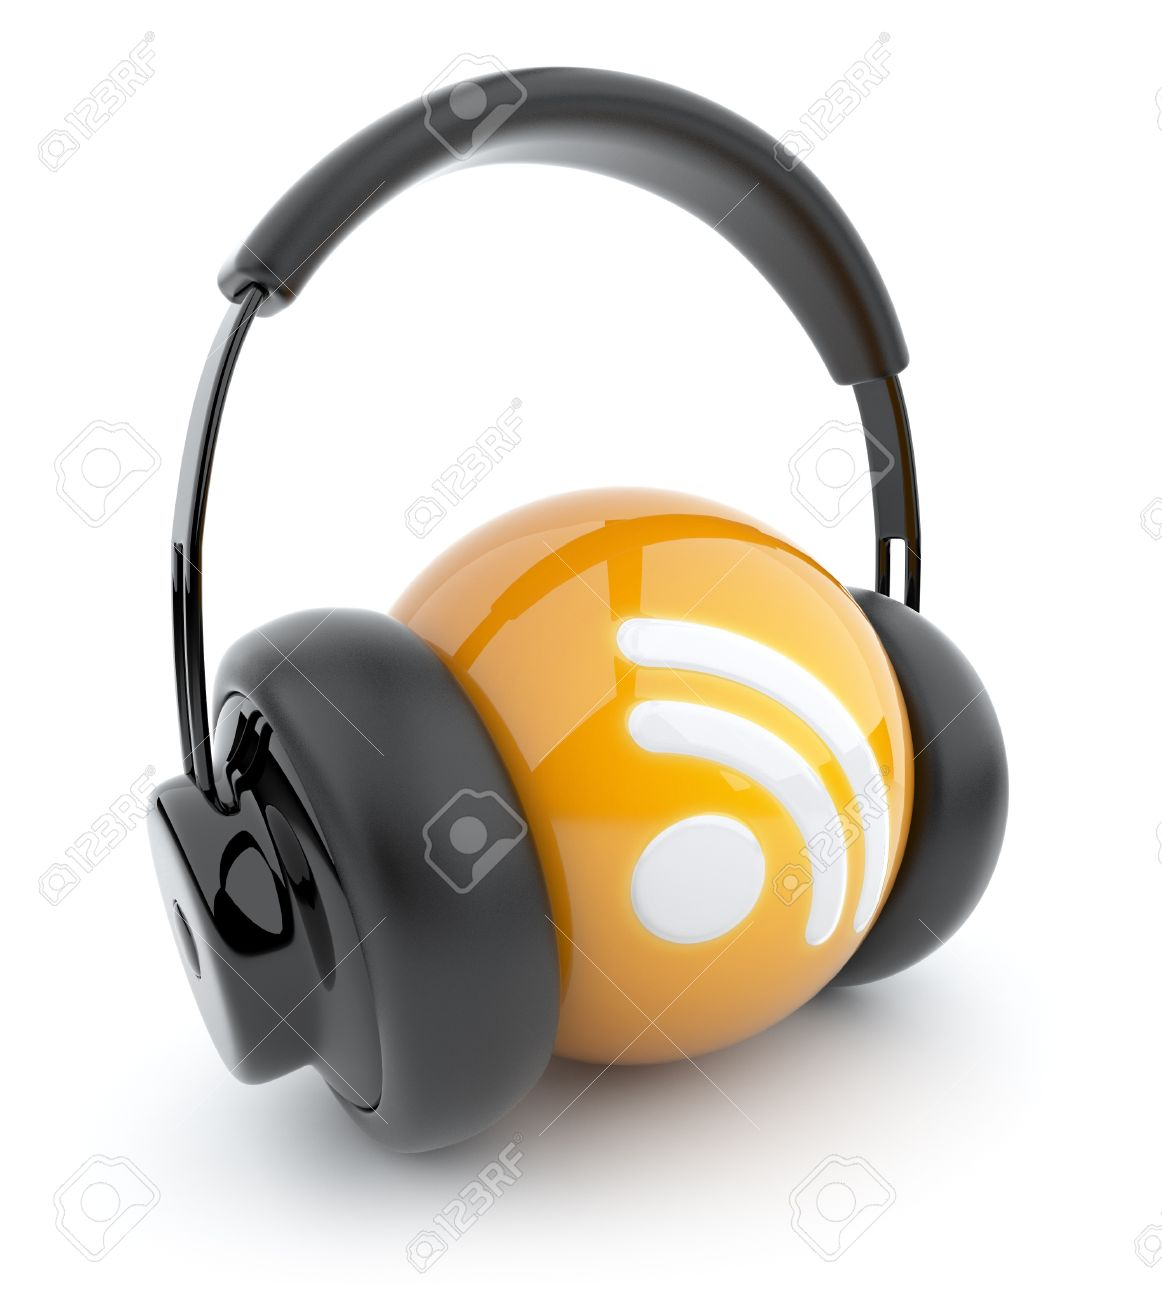 Feed or Rss icon 3D  Blog  Sphere witch audio headphones  Isolated